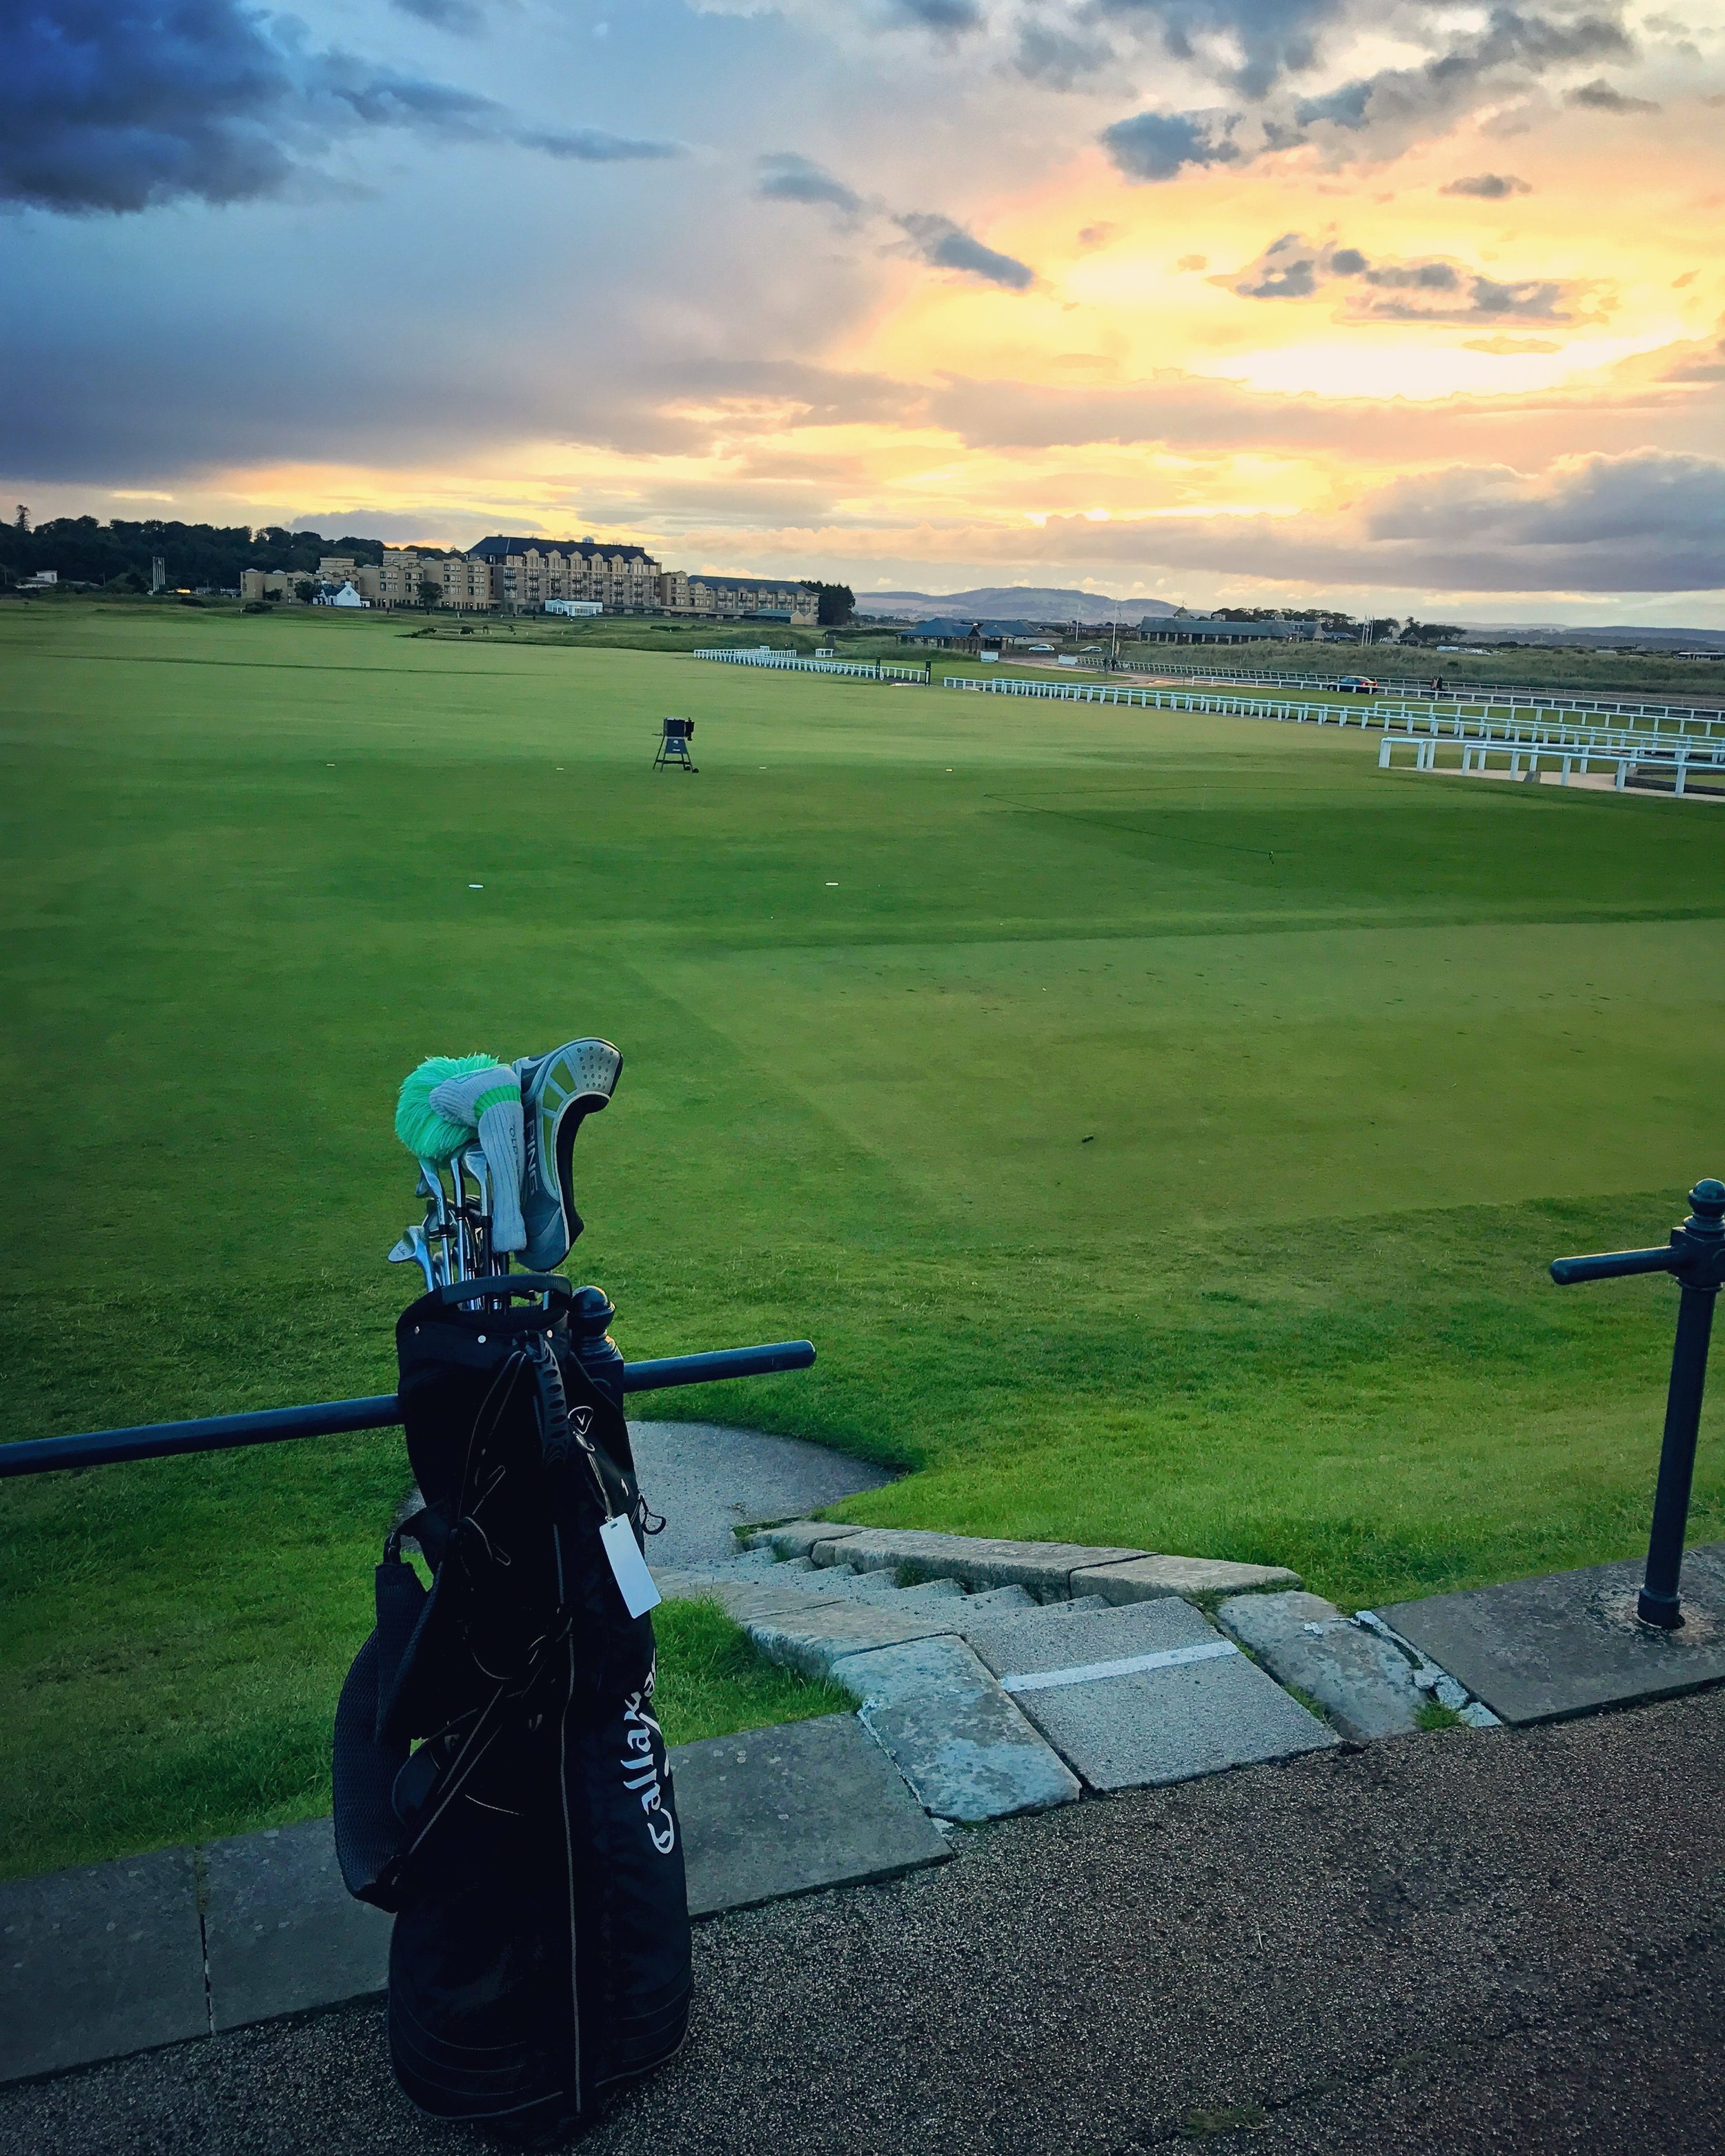 hochstein-design-best-of-2017-part-3-st-andrews-old-course-playing-bag-steps.jpg